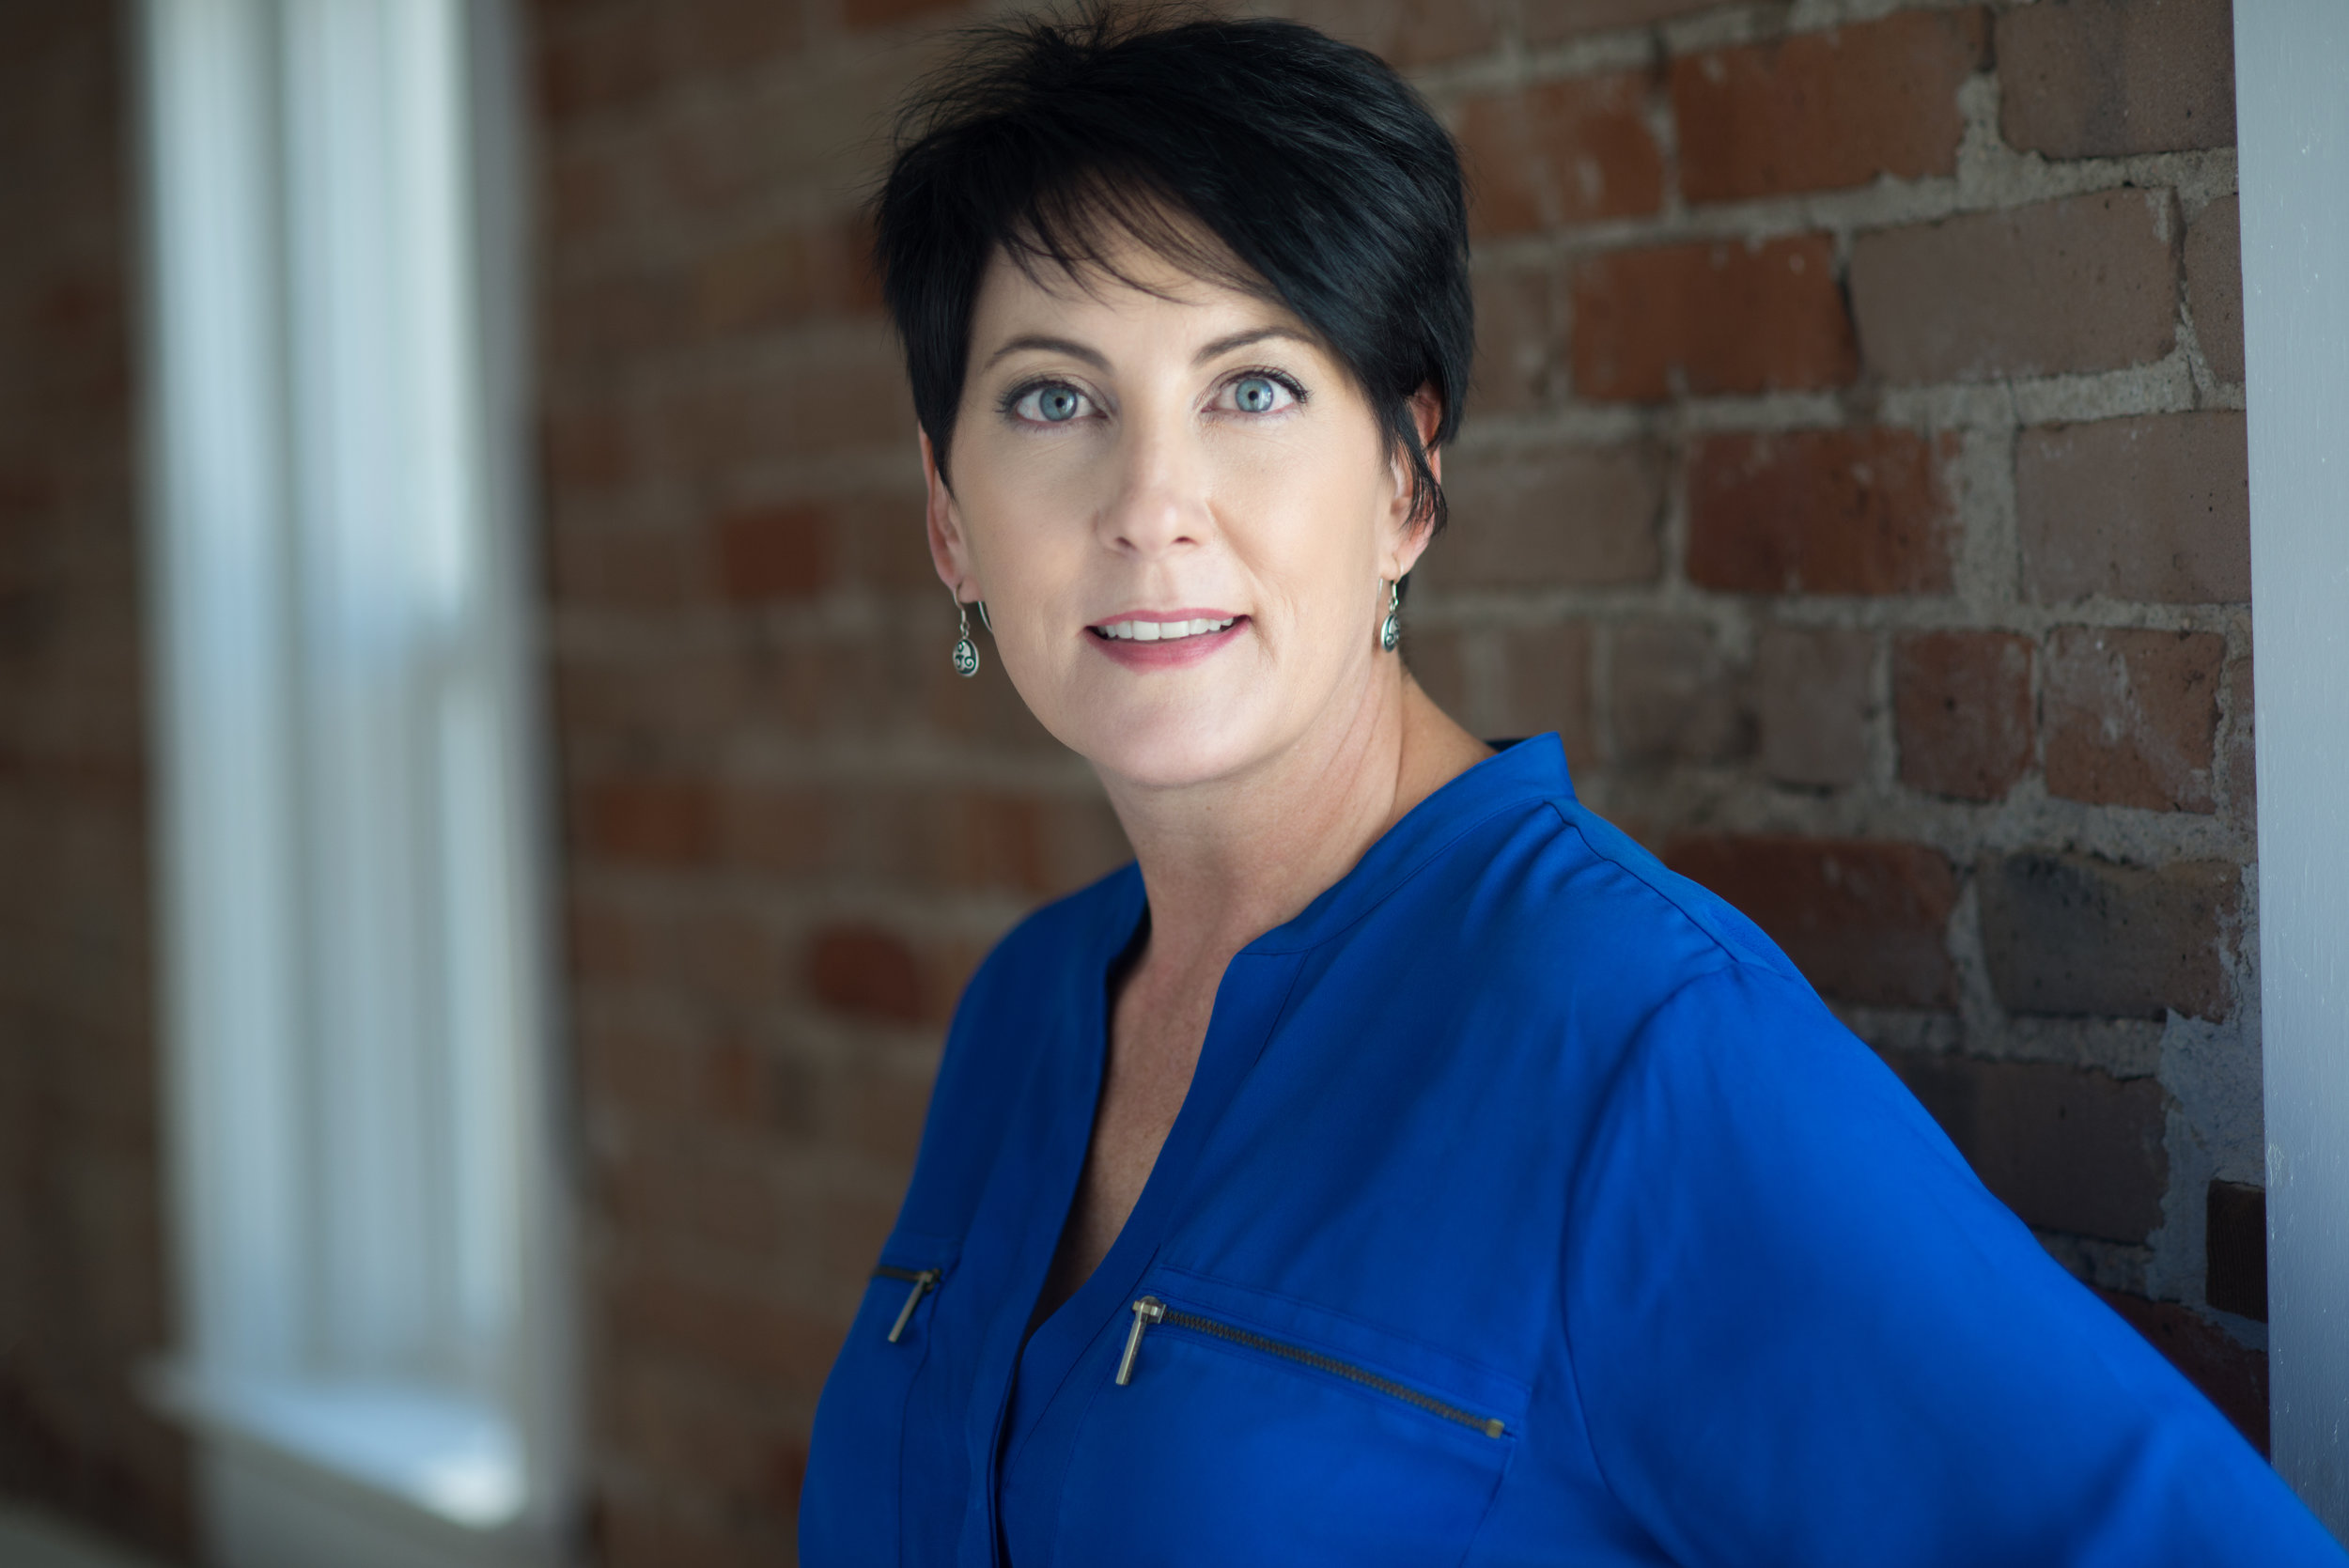 professional business headshots in Denver and Lakewood Colorado